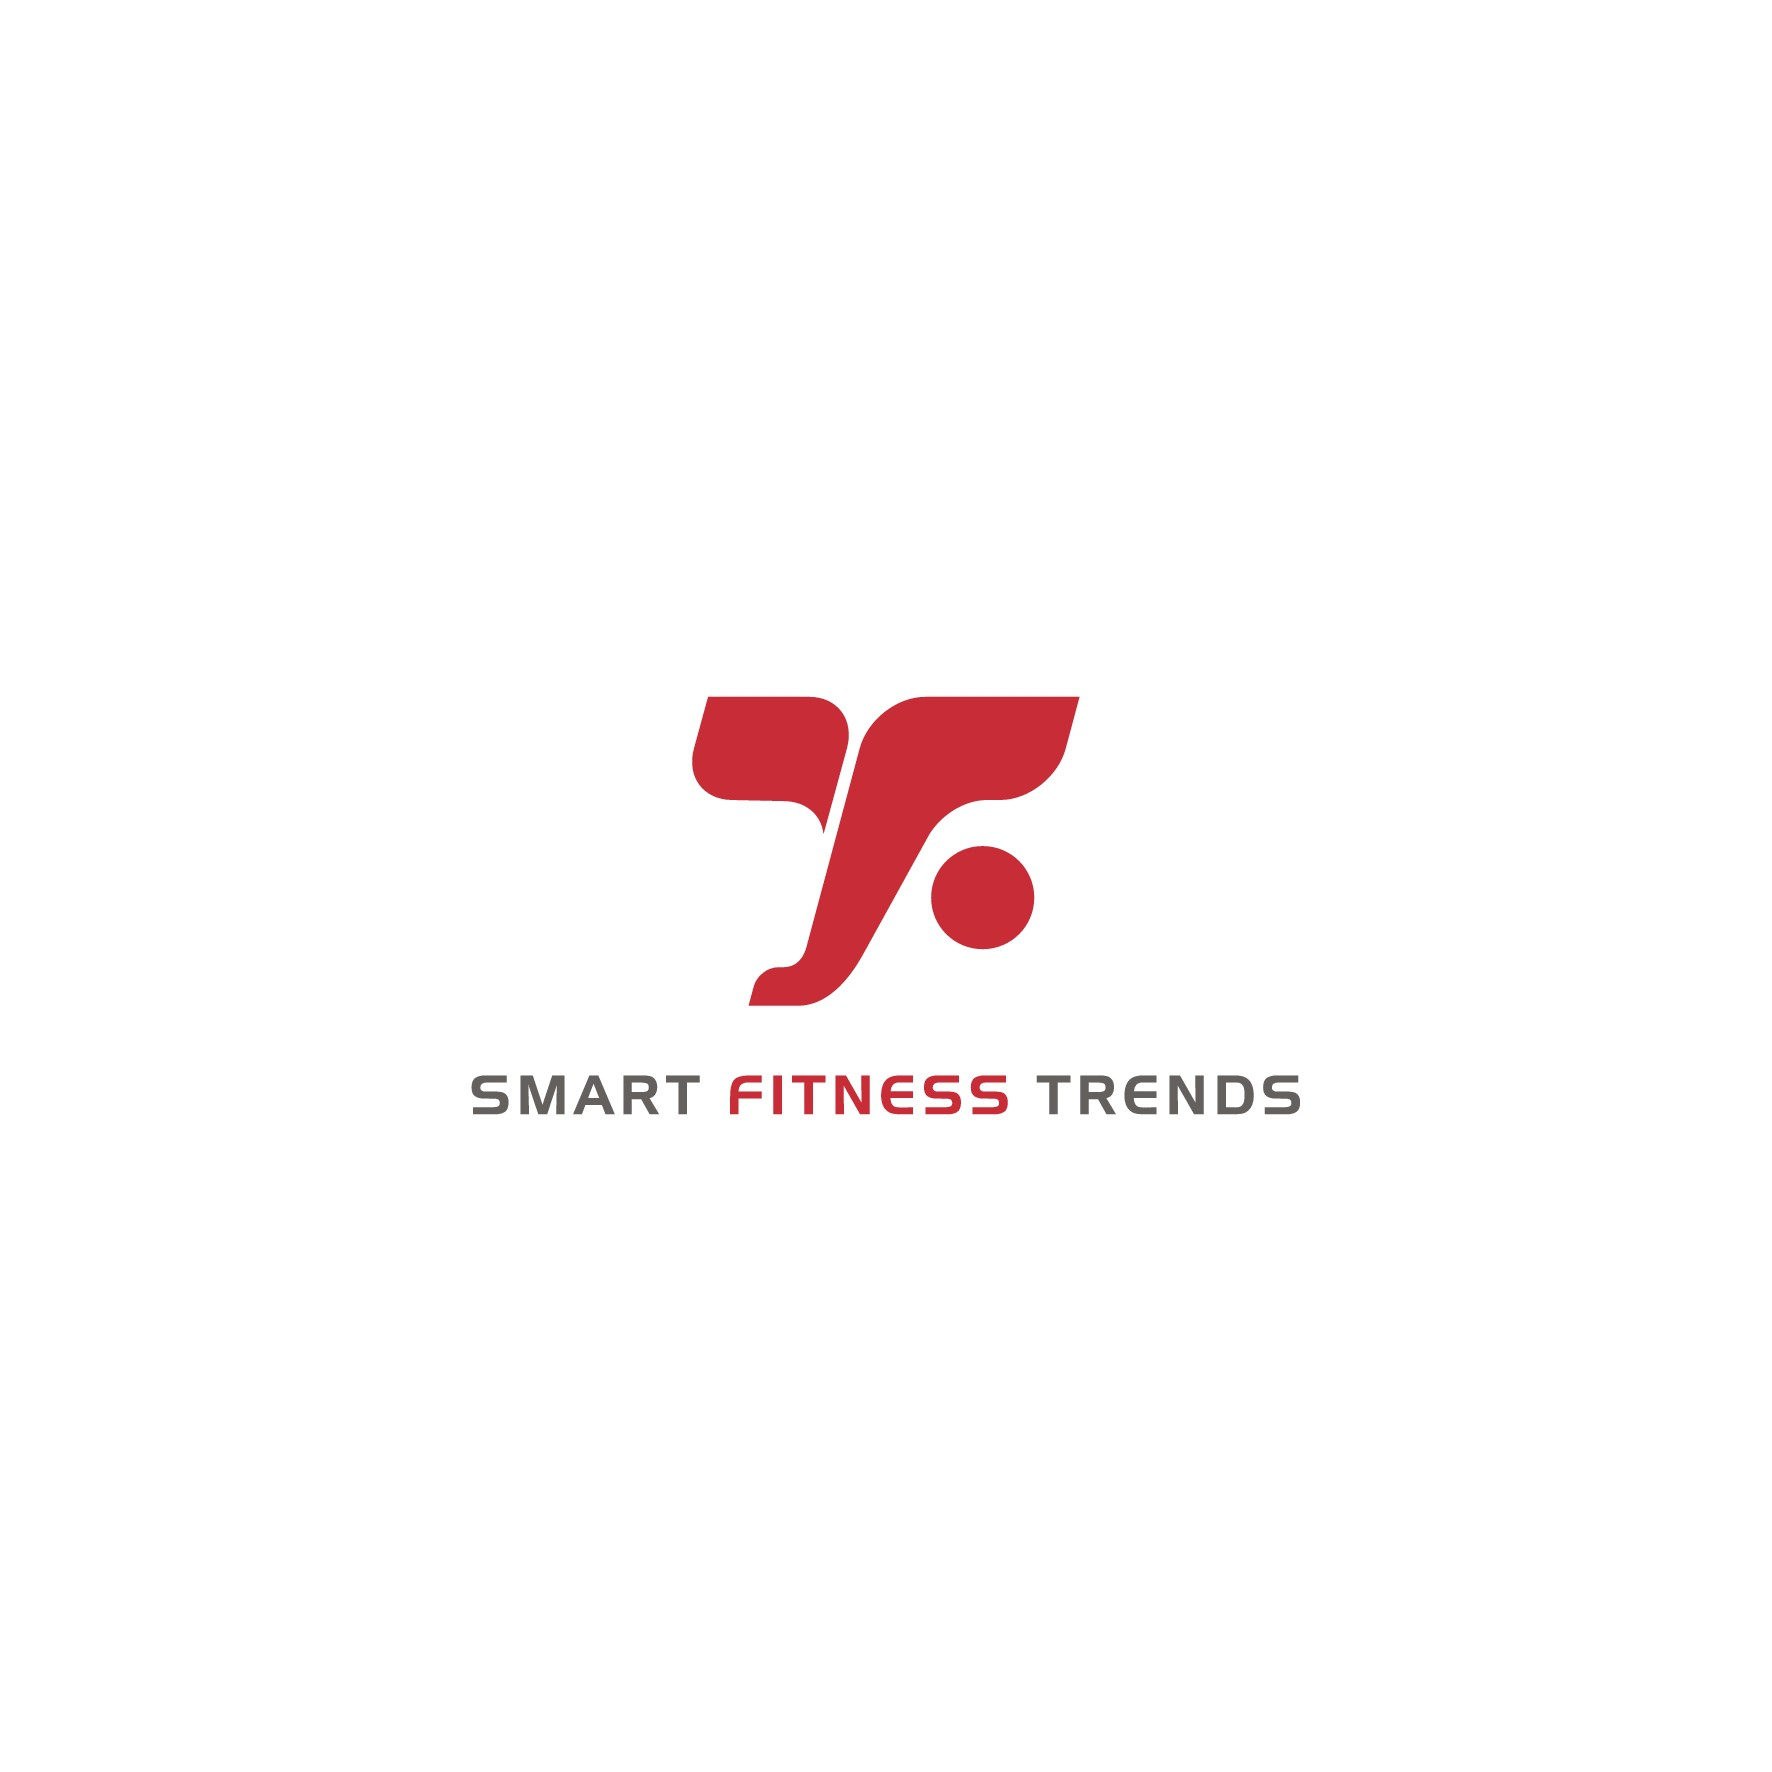 Very much appreciate your help in realizing my idea of a logo for smartfitnesstrends.de